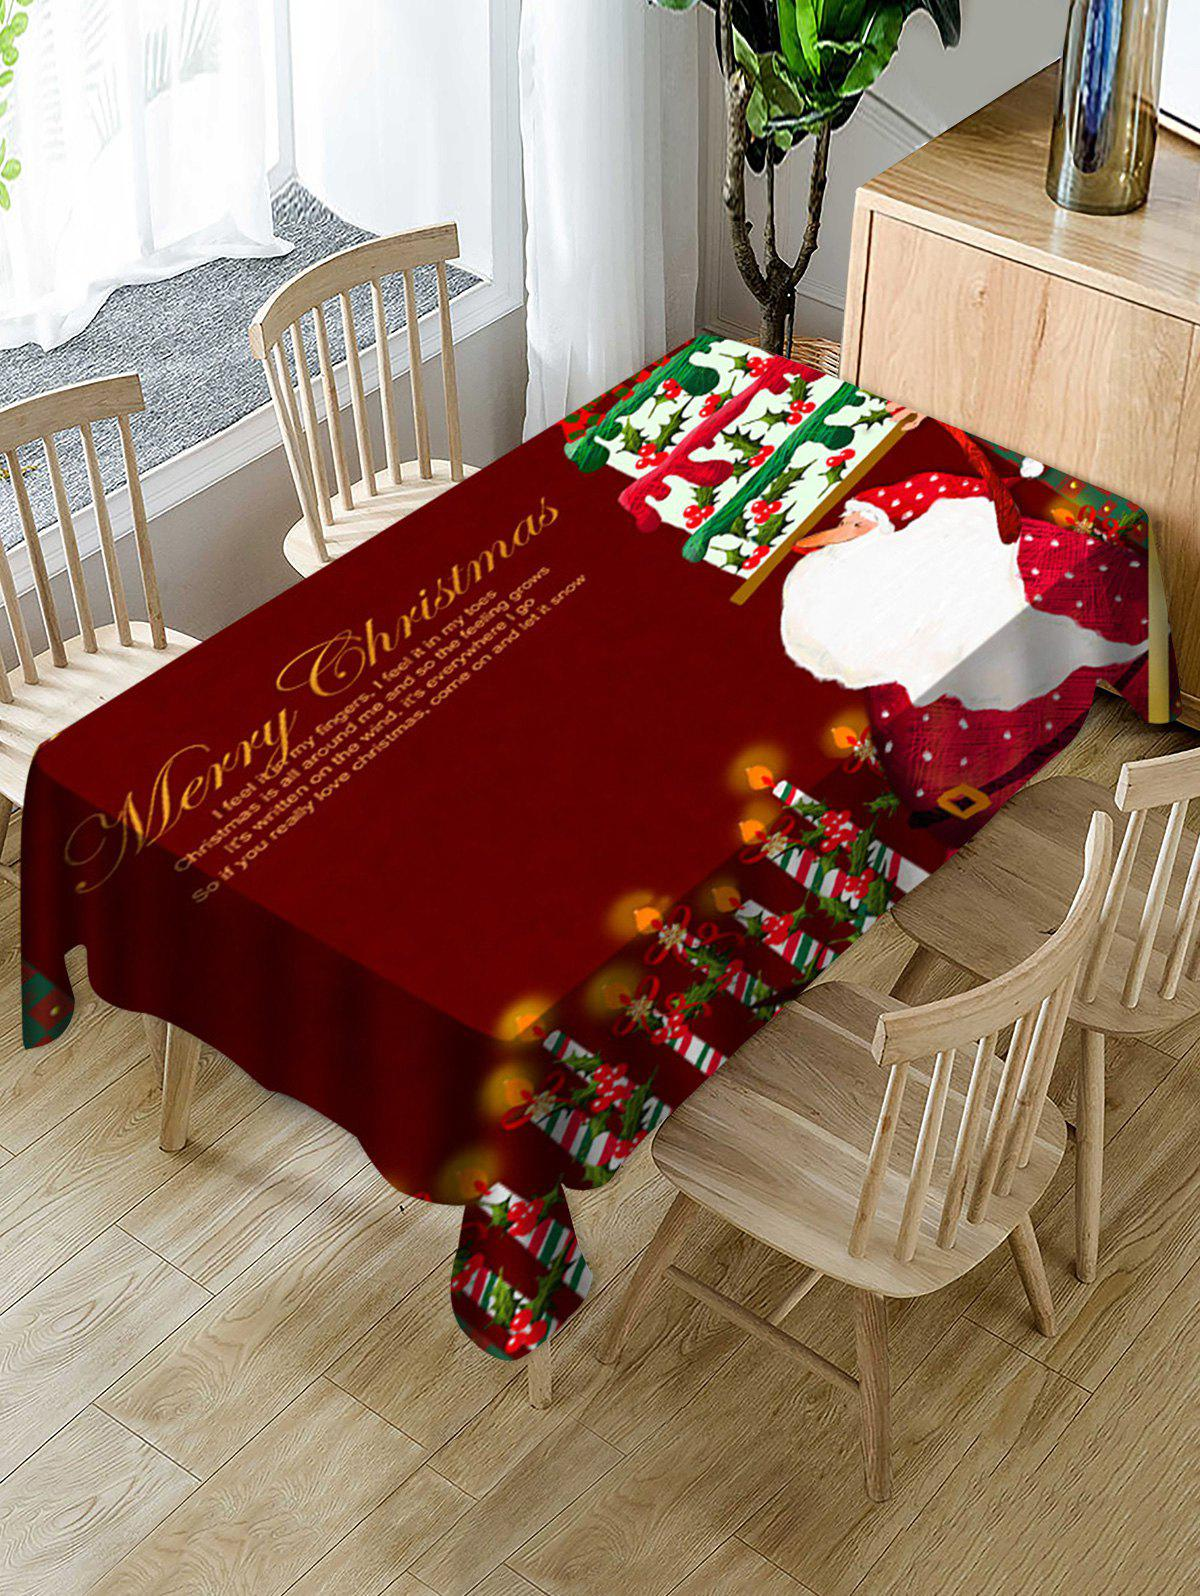 Merry Christmas Santa Claus Fabric Waterproof Table Cloth - multicolor W55 X L71 INCH